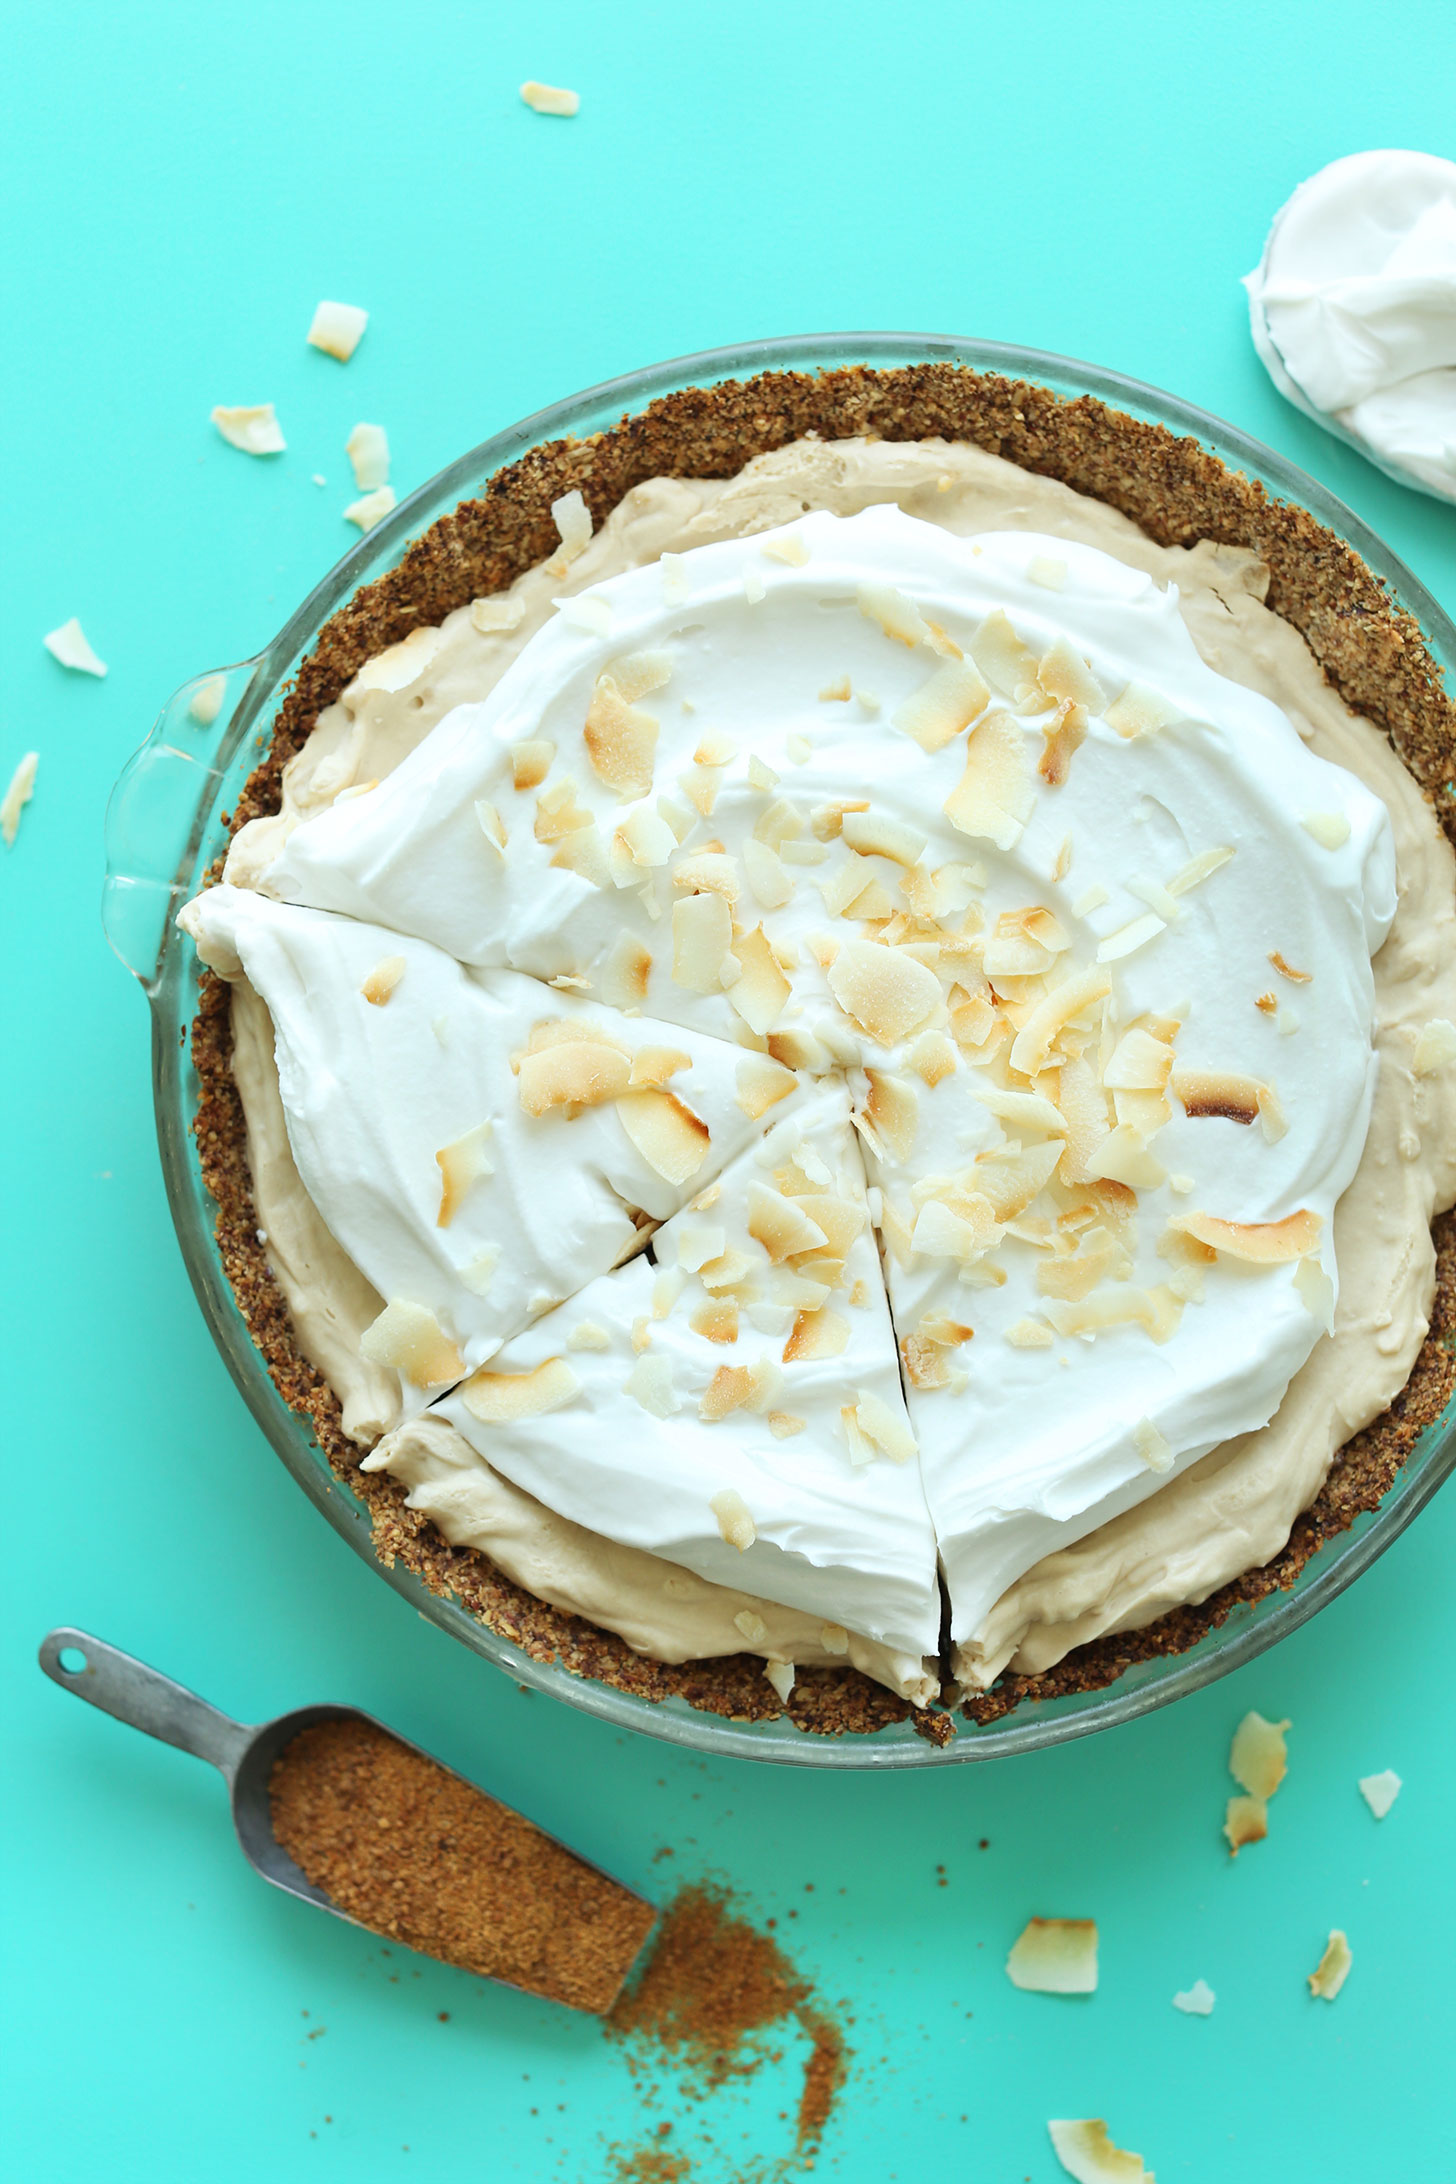 Partially sliced gluten-free vegan Coconut Cream PIe